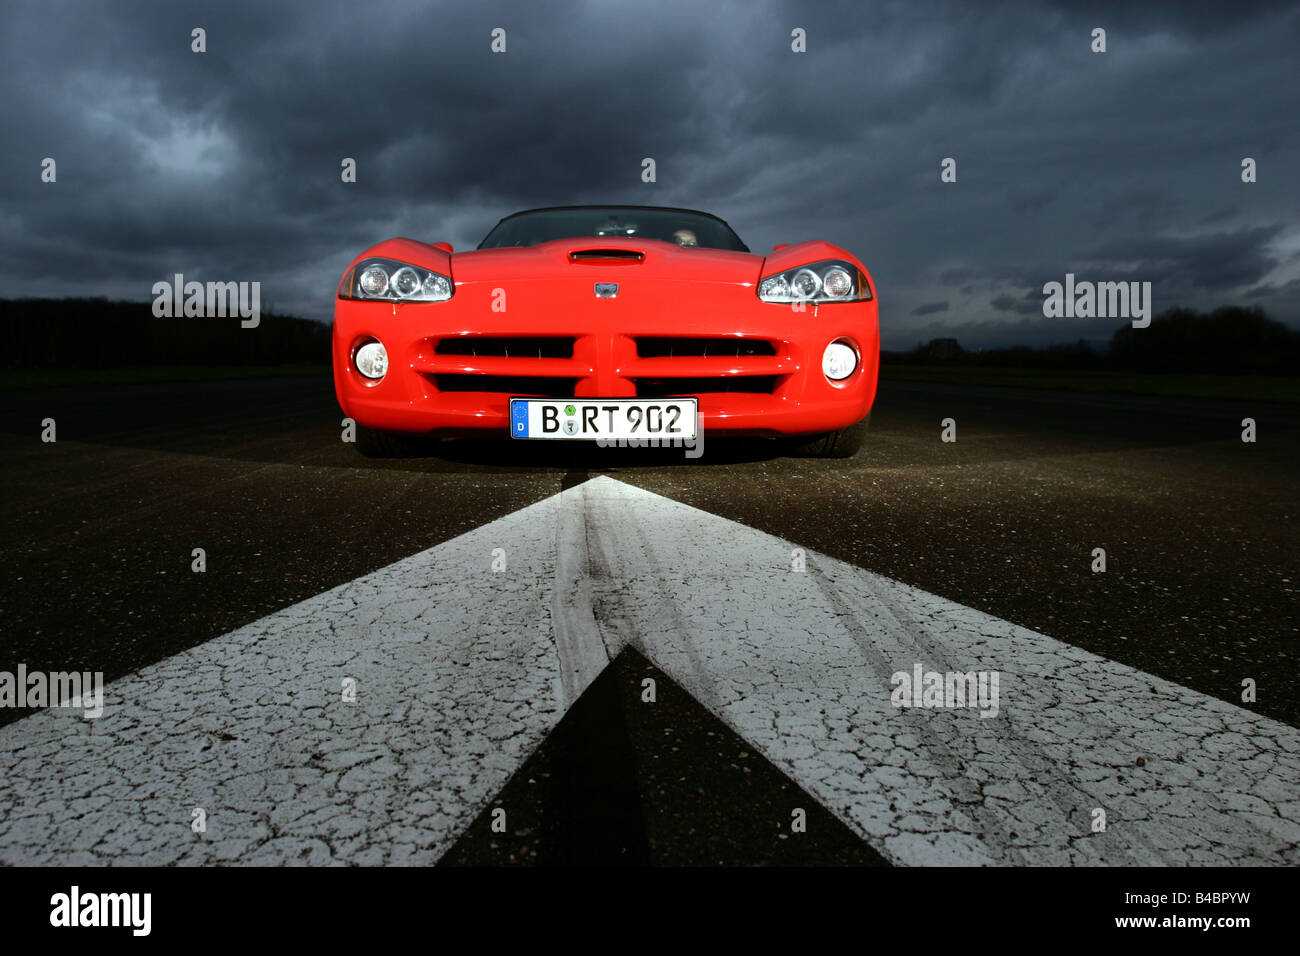 Car, Dodge Viper SRT-10, Convertible, model year 2003-, red, FGHDS, standing, upholding, frontal view, Test track - Stock Image